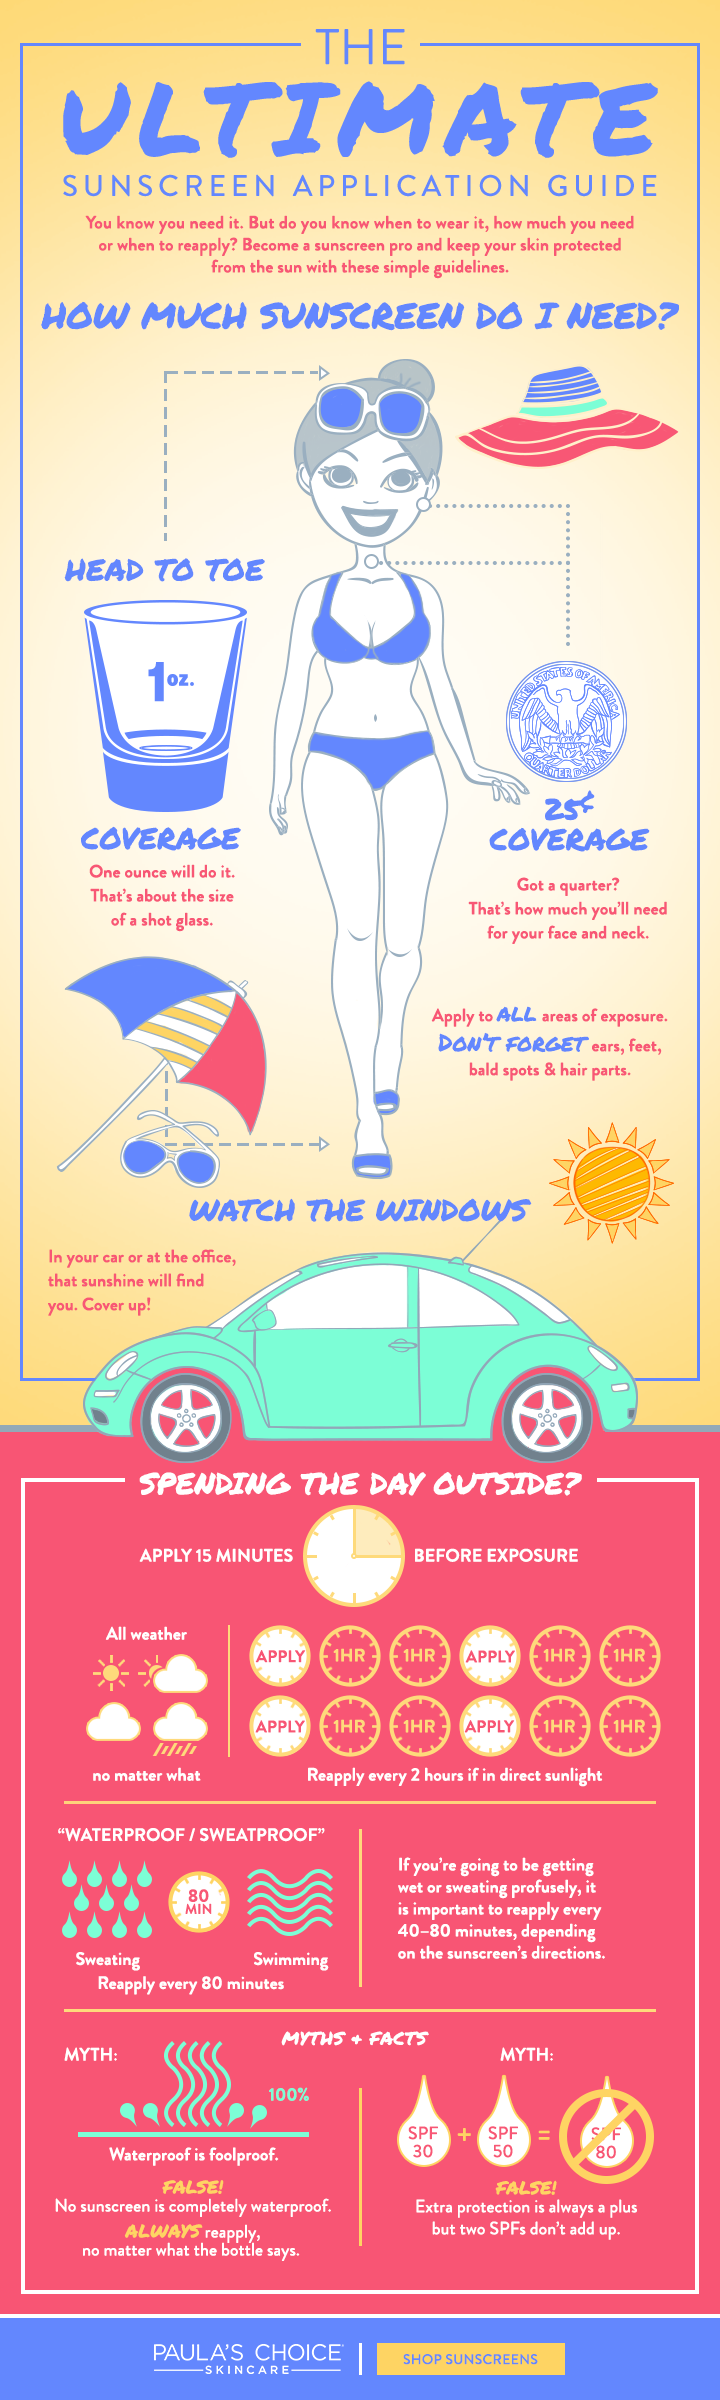 Sunscreen application infographic.png